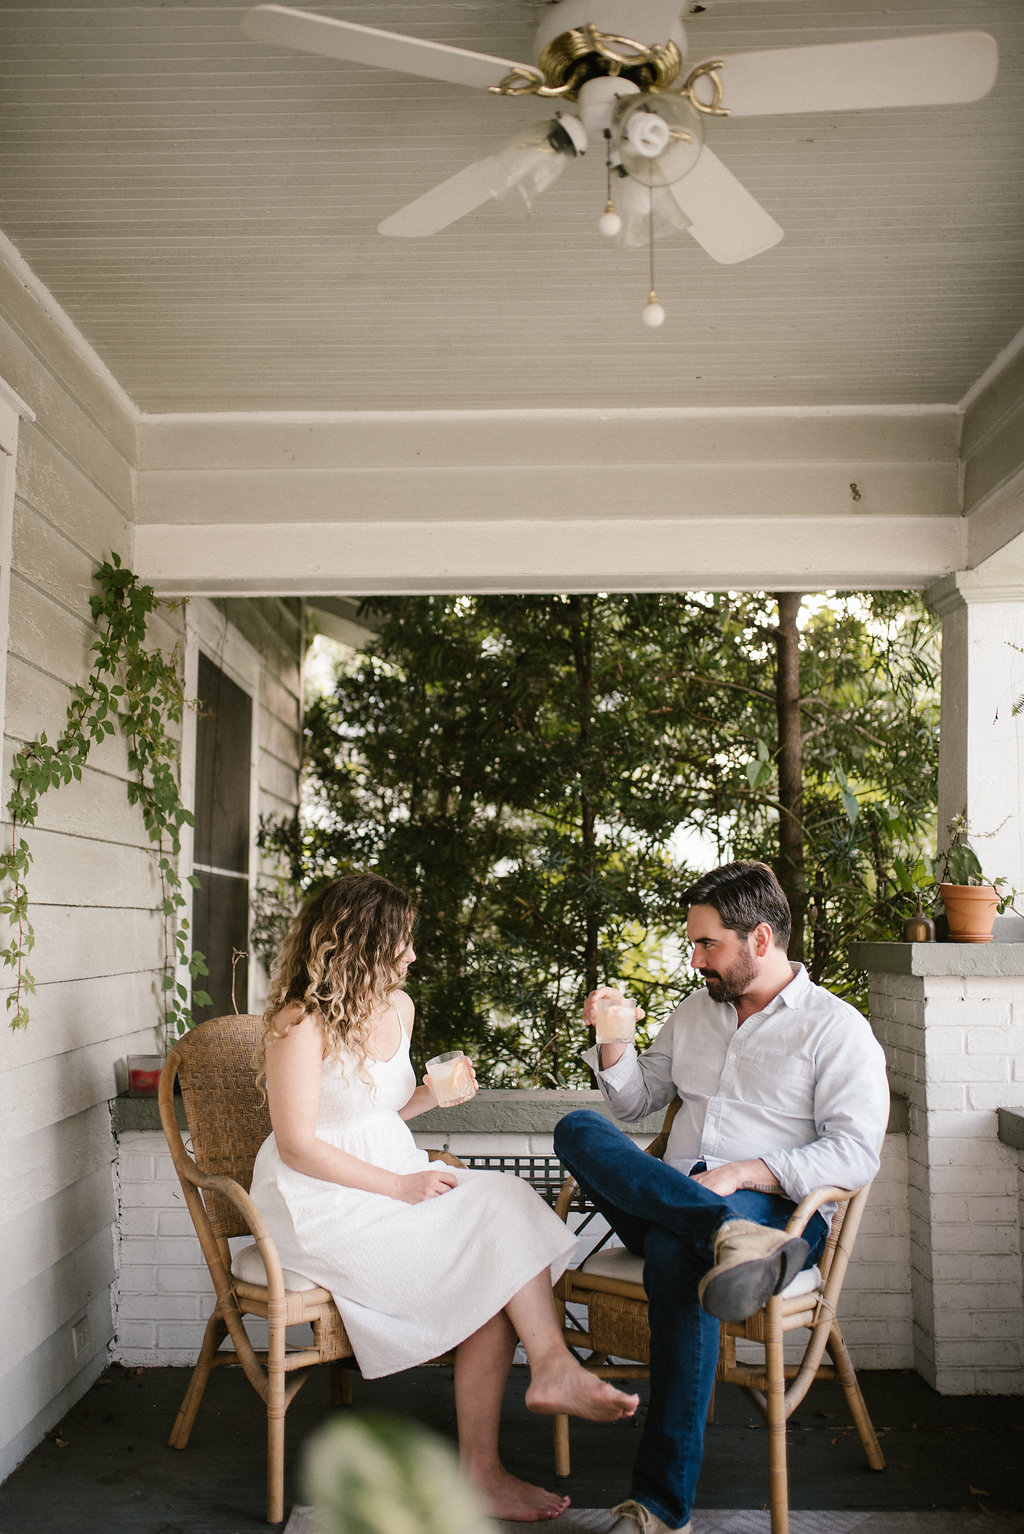 Gina-Robbie-In-Home-Engagement-St-Pete-80.jpg